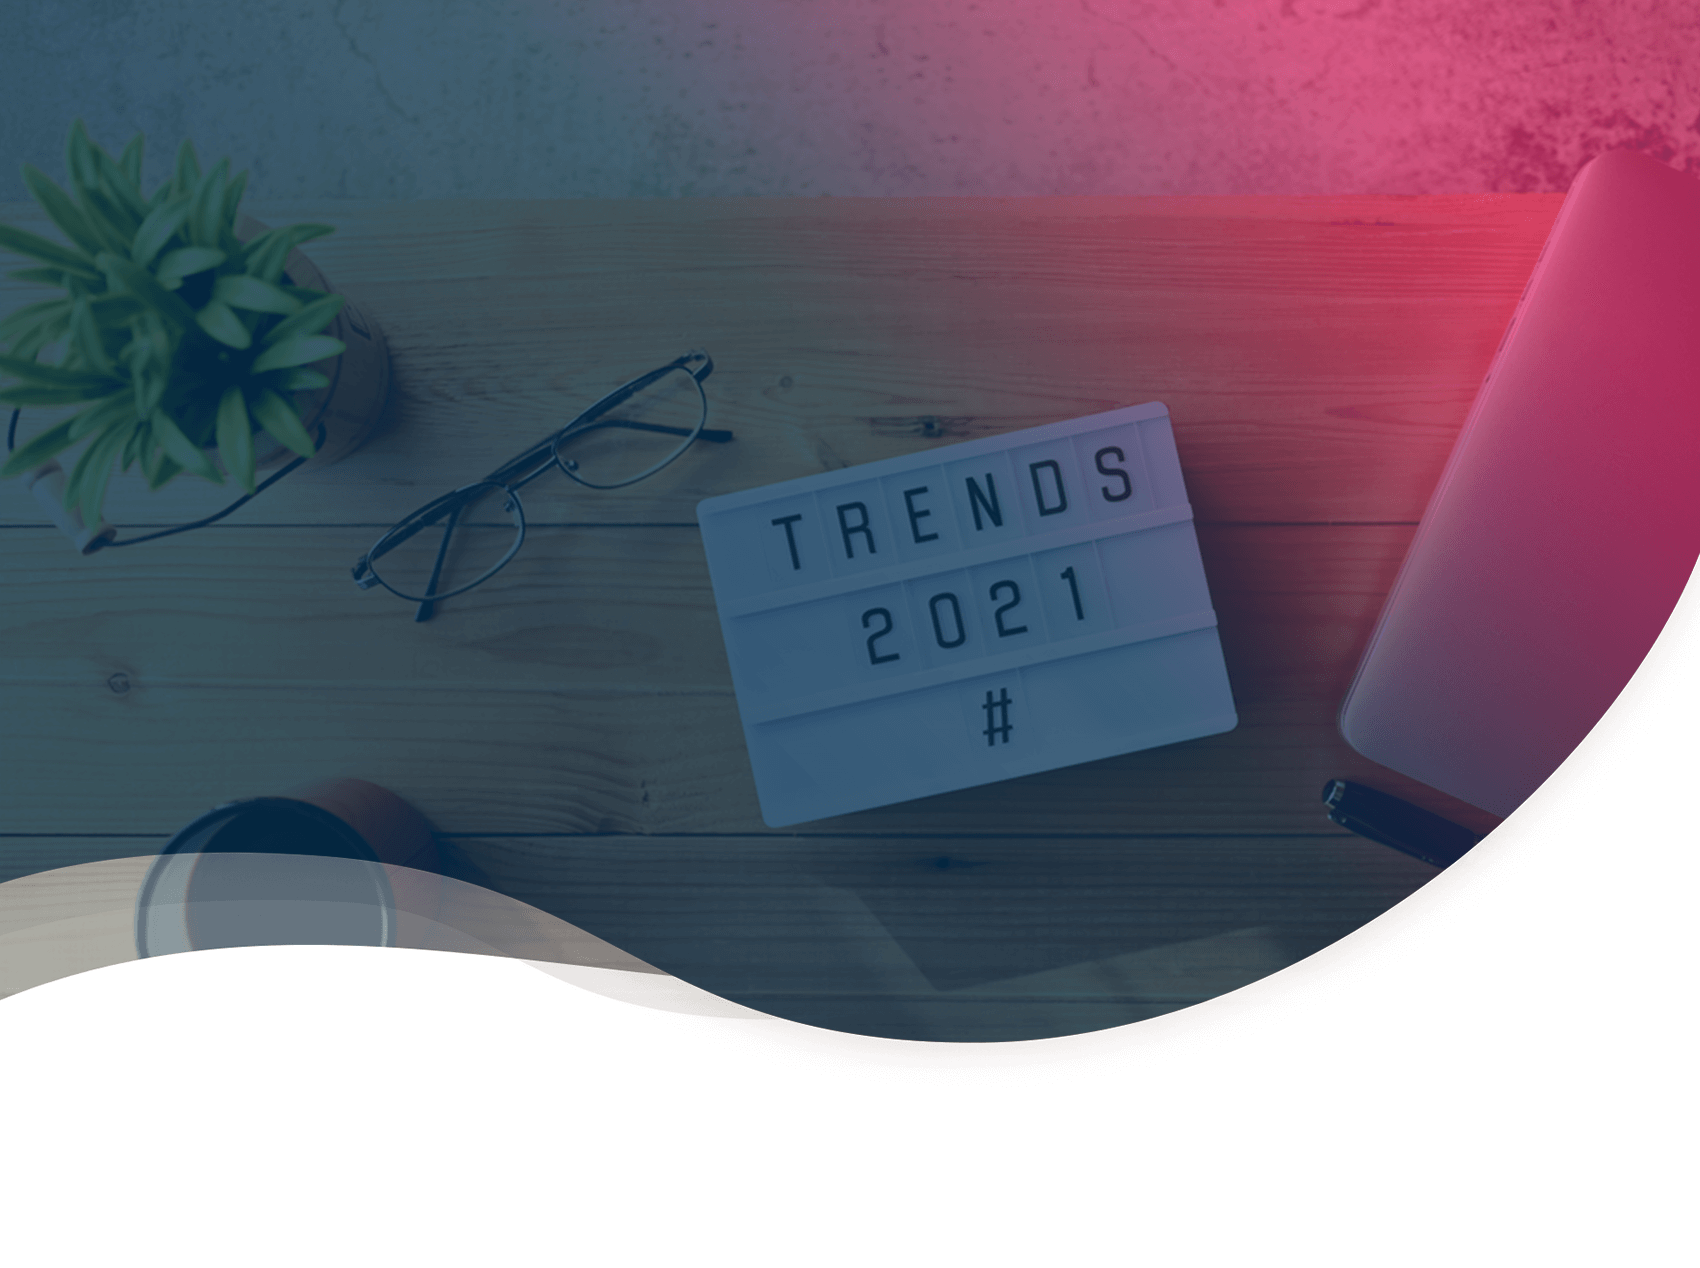 Tendances marketing : les prédictions de 5 experts pour 2021